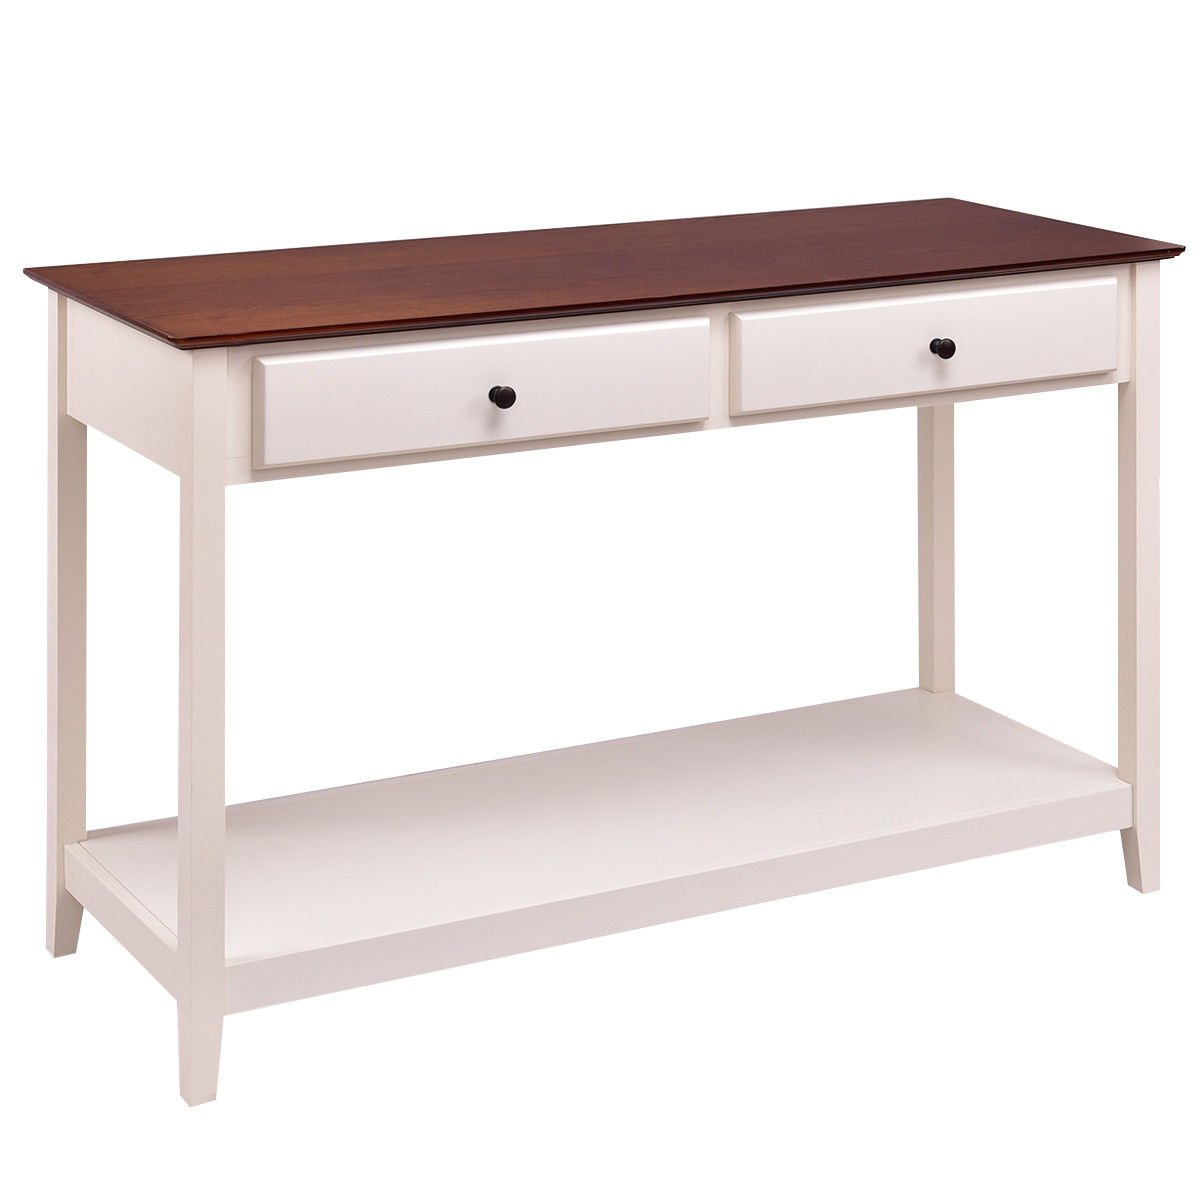 Giantex Console Sofa Table Wood Entryway Living Room Accent Stand w/ Drawer and Shelf